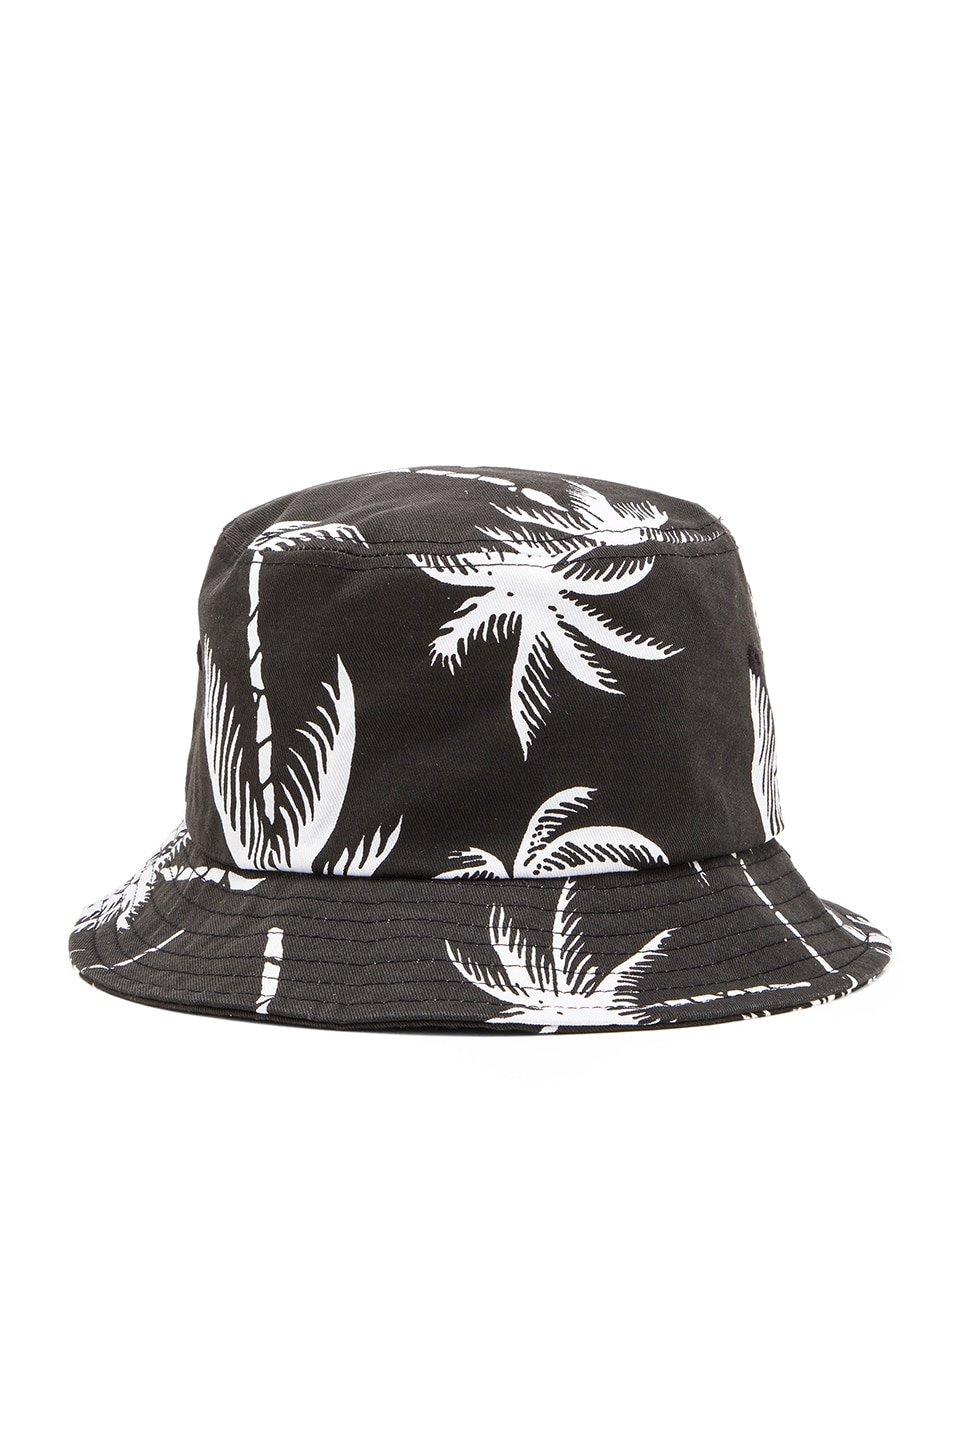 Stussy Palms SU15 Bucket Hat in Black